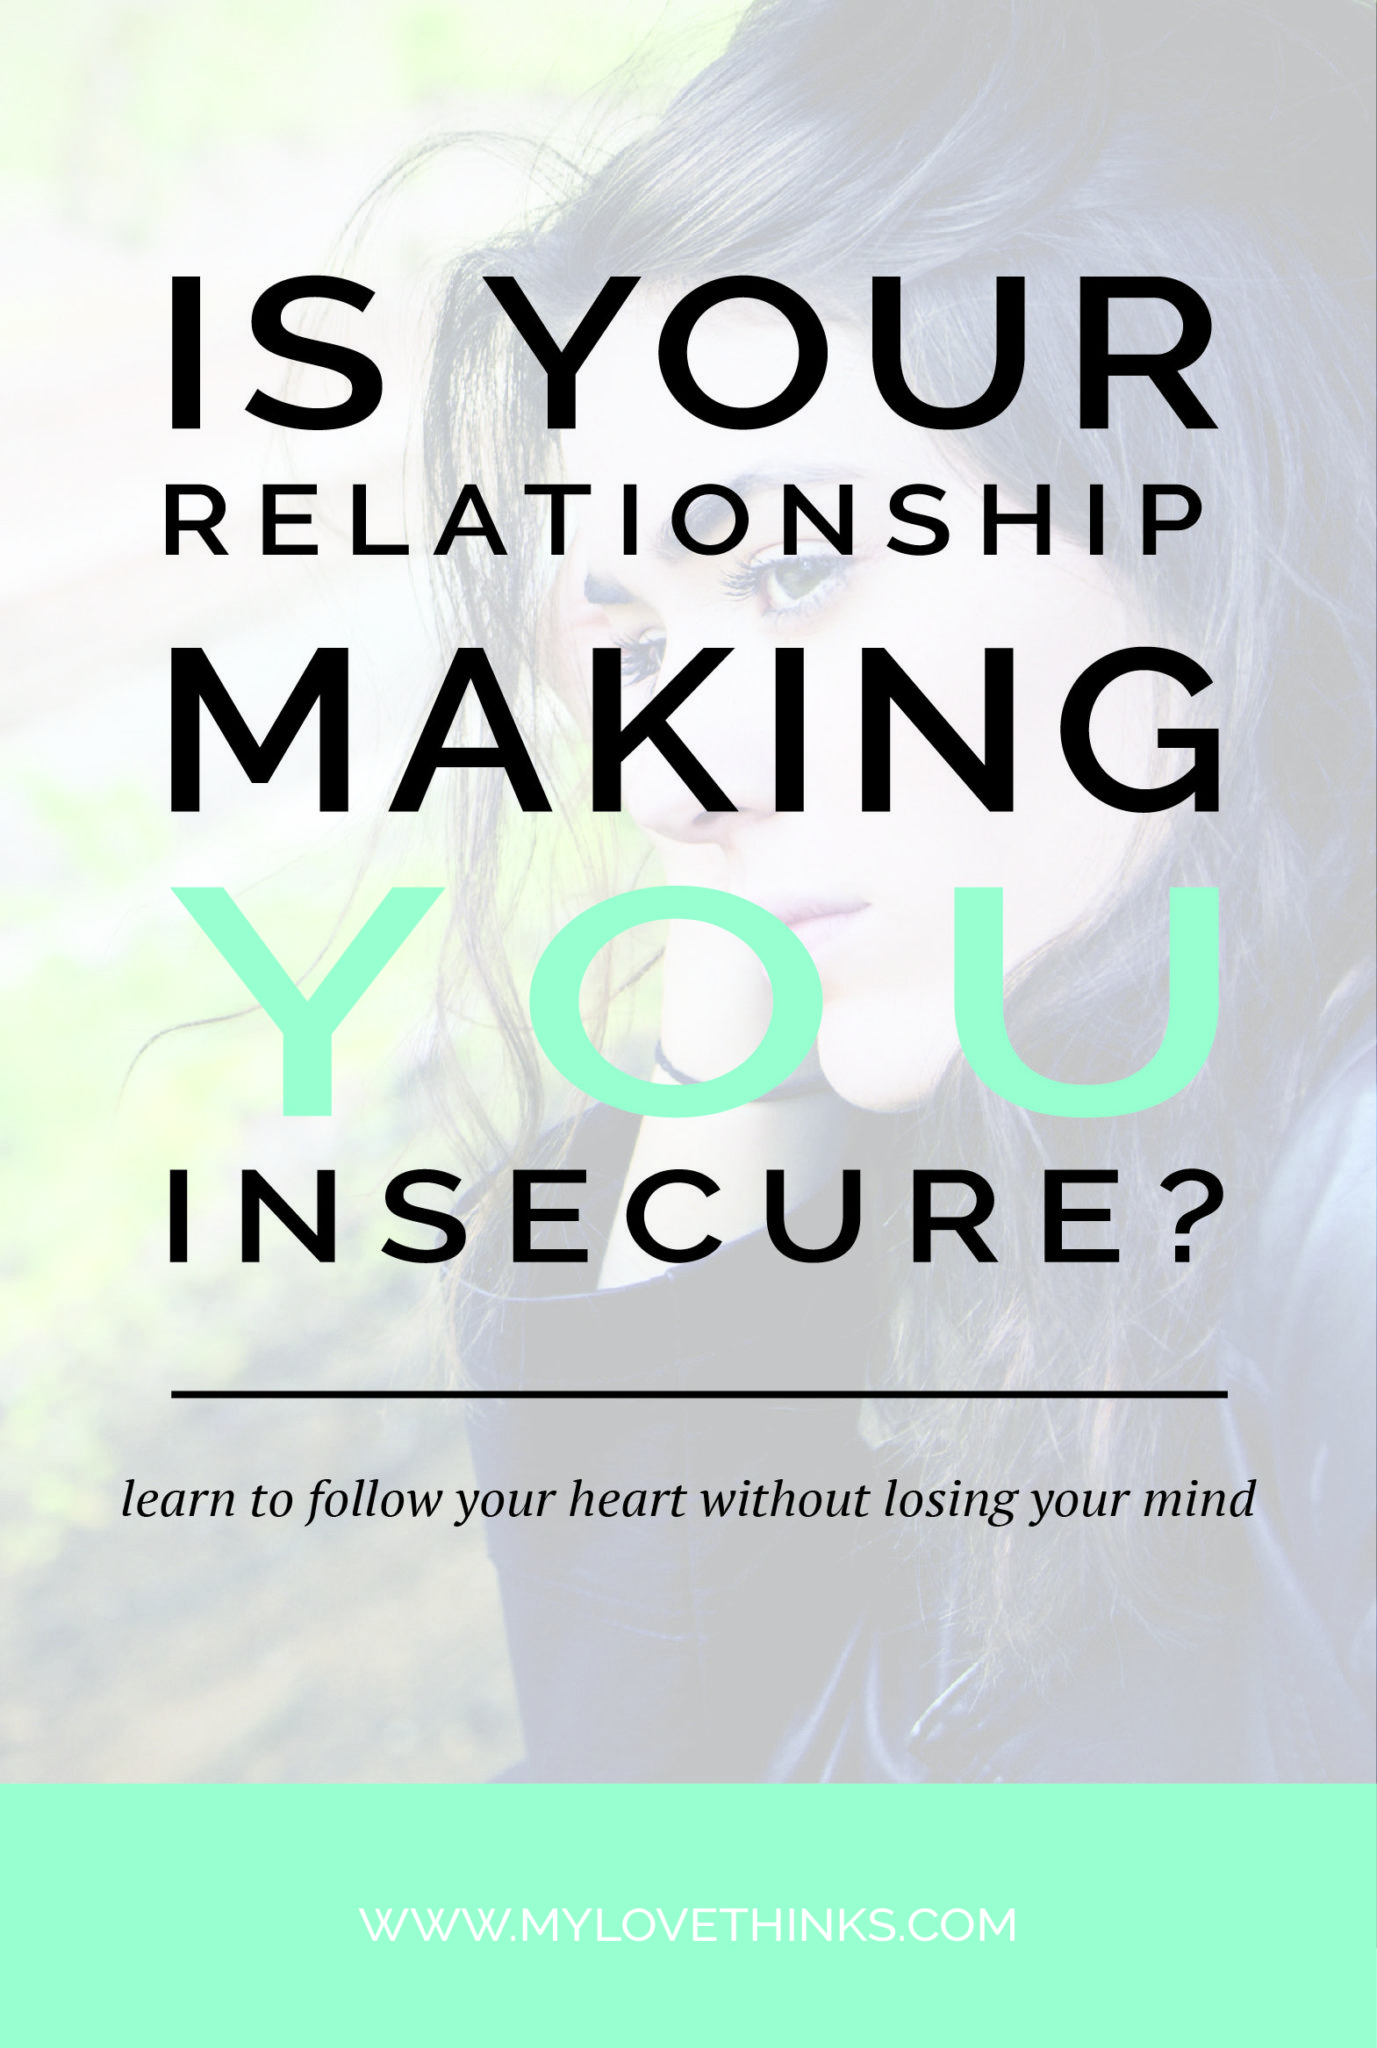 Is your relationship making you insecure?